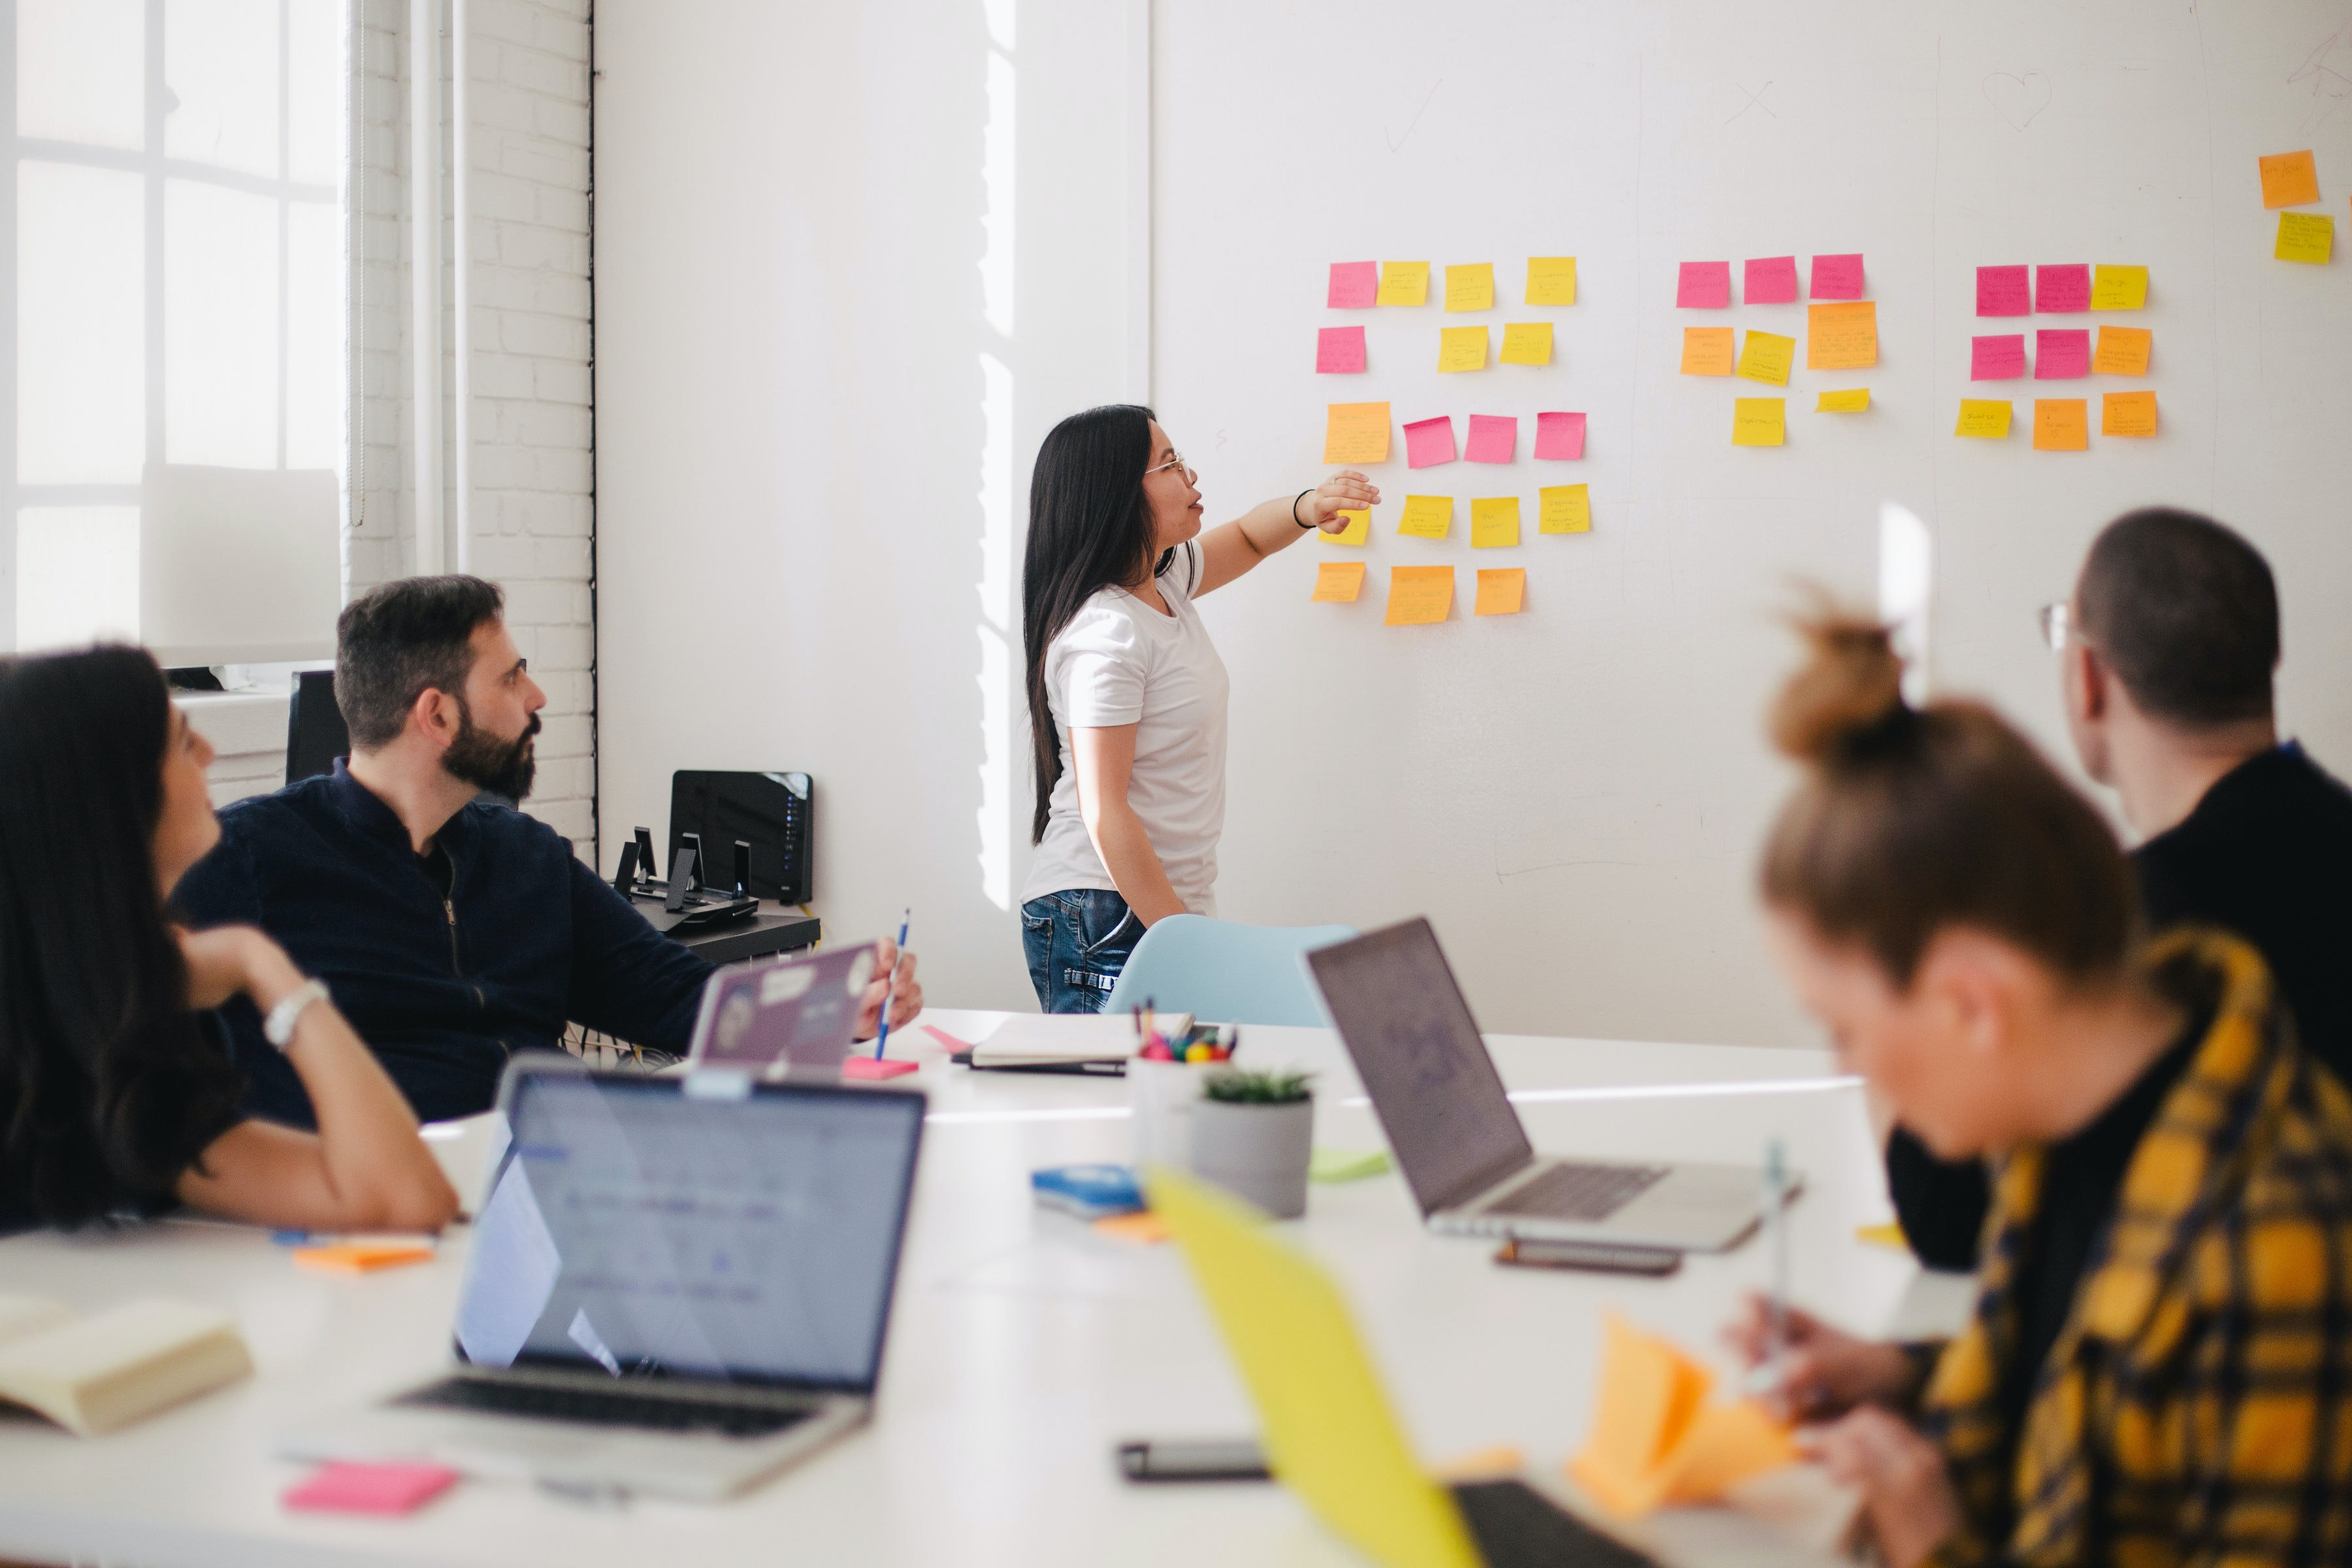 From post-it notes to innovation lab